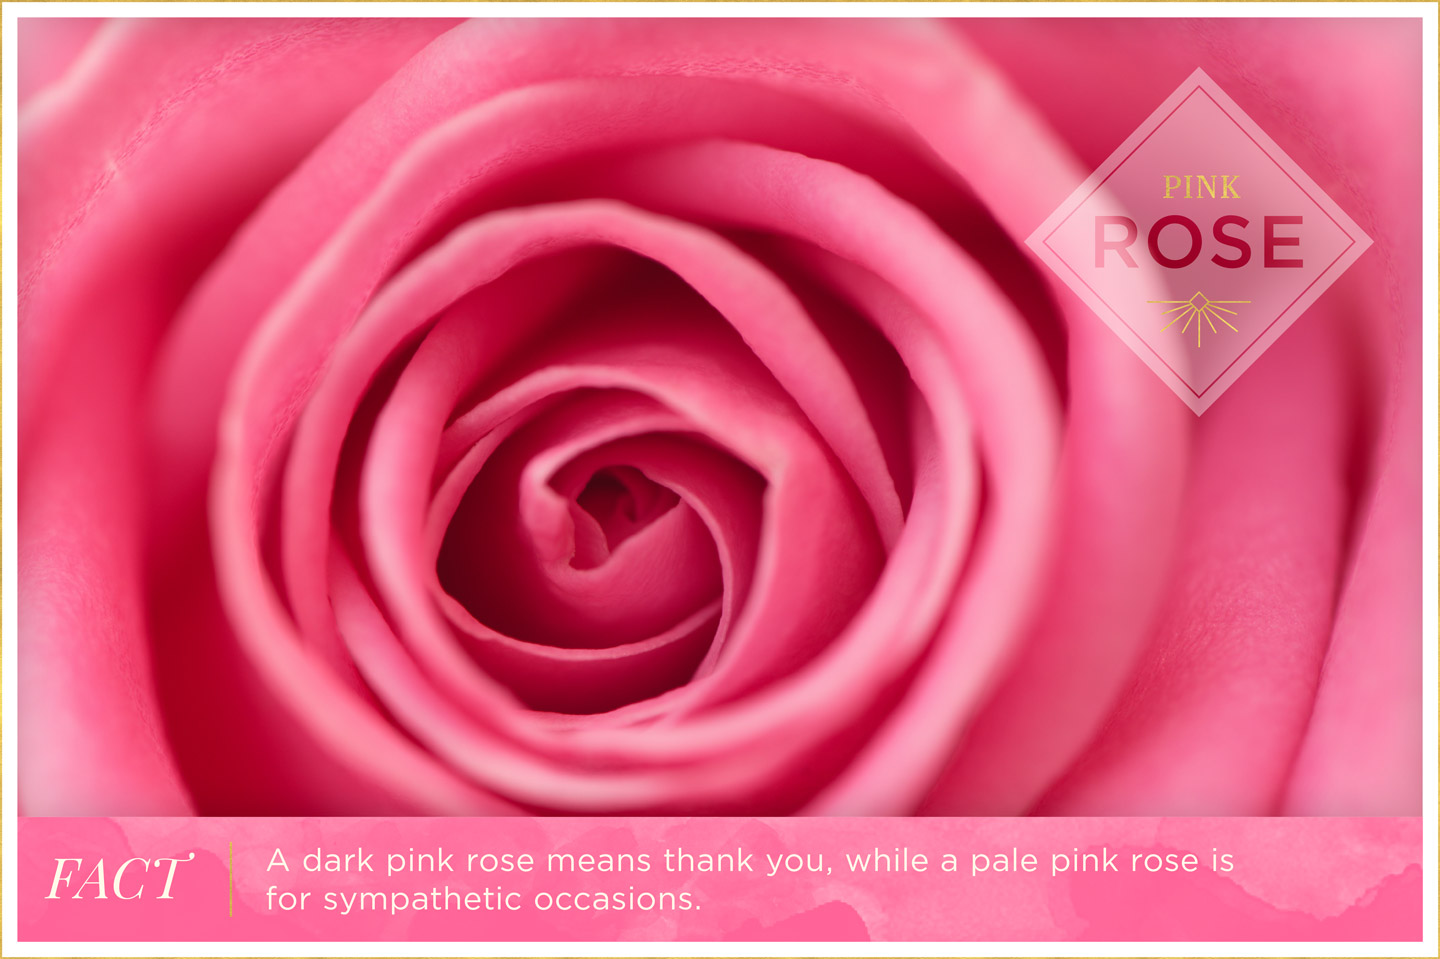 pink-rose-meaning